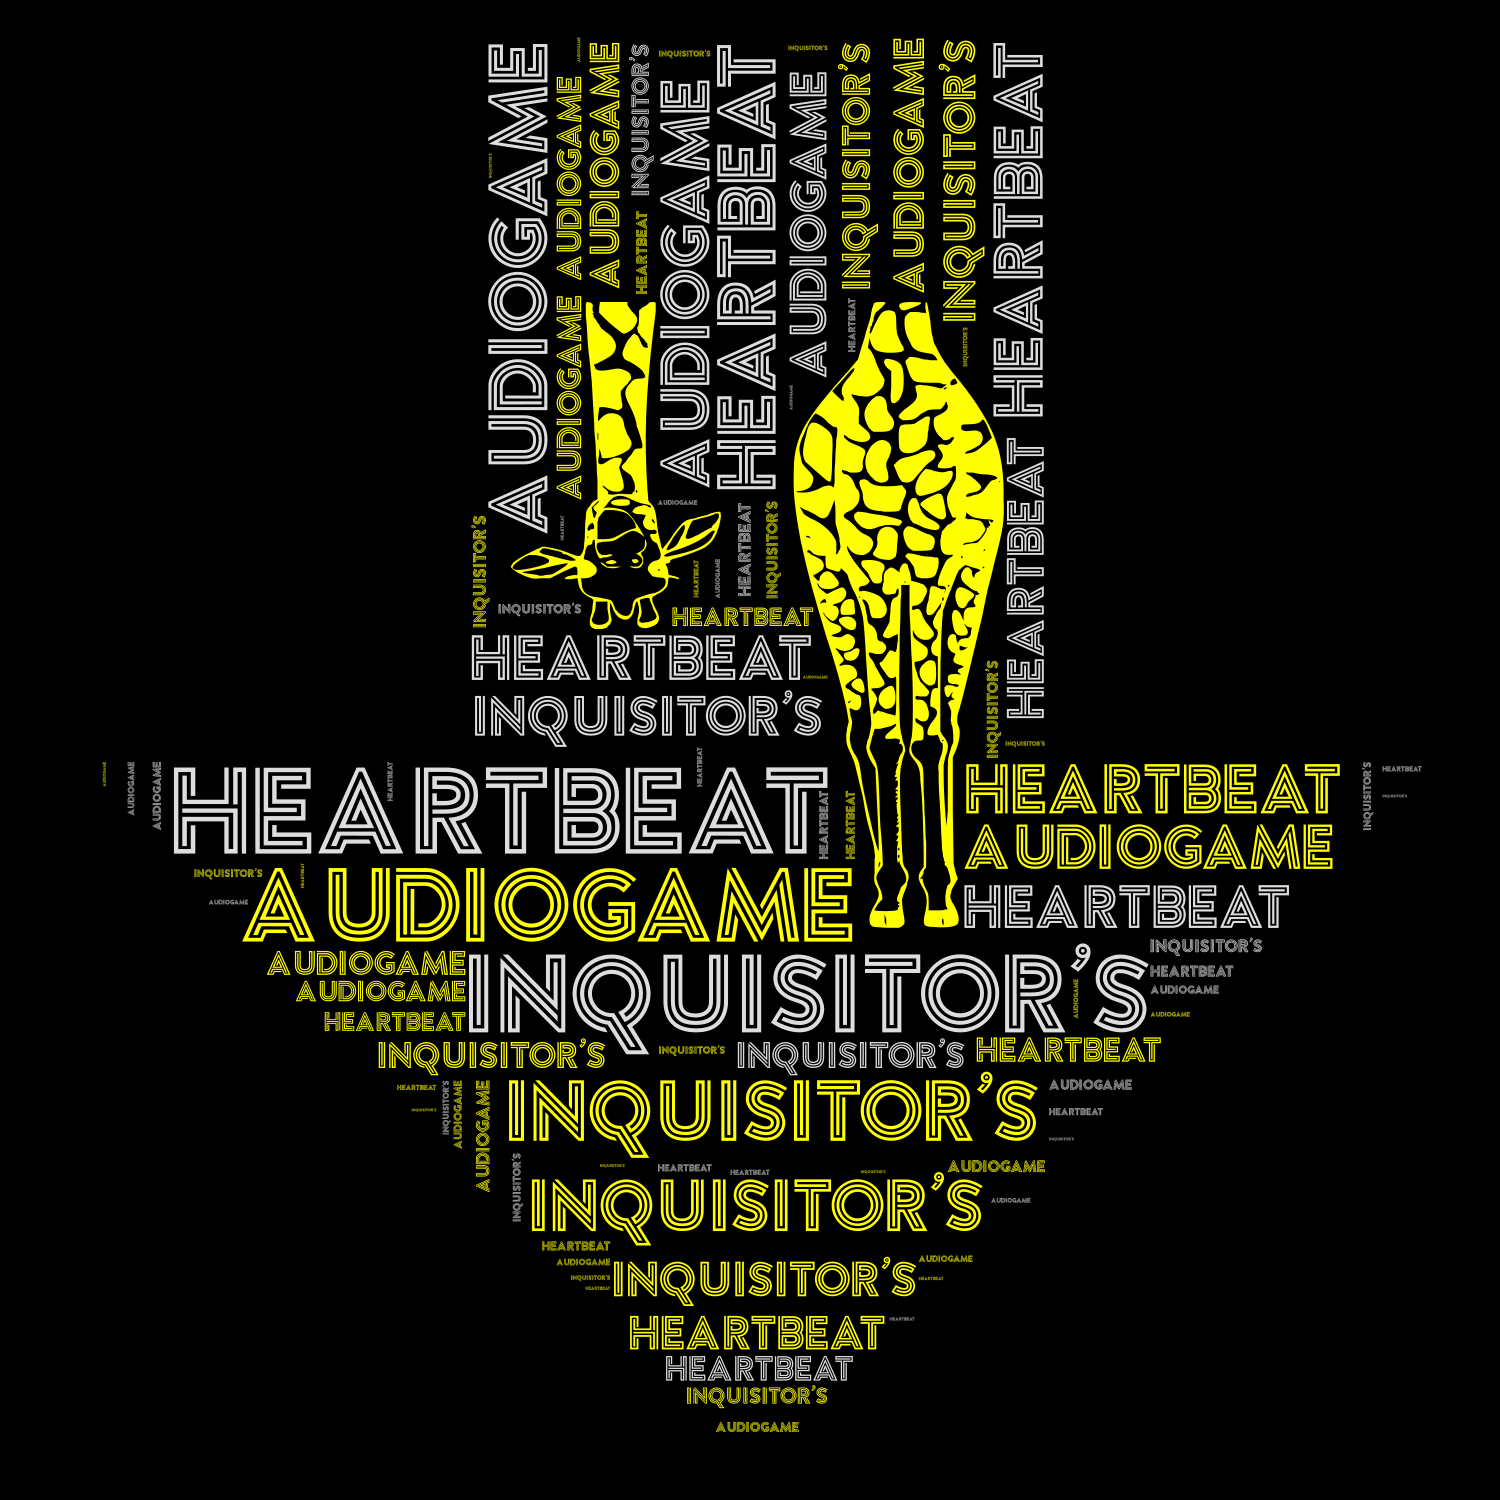 Inquisitor's Heartbeat Audiogame